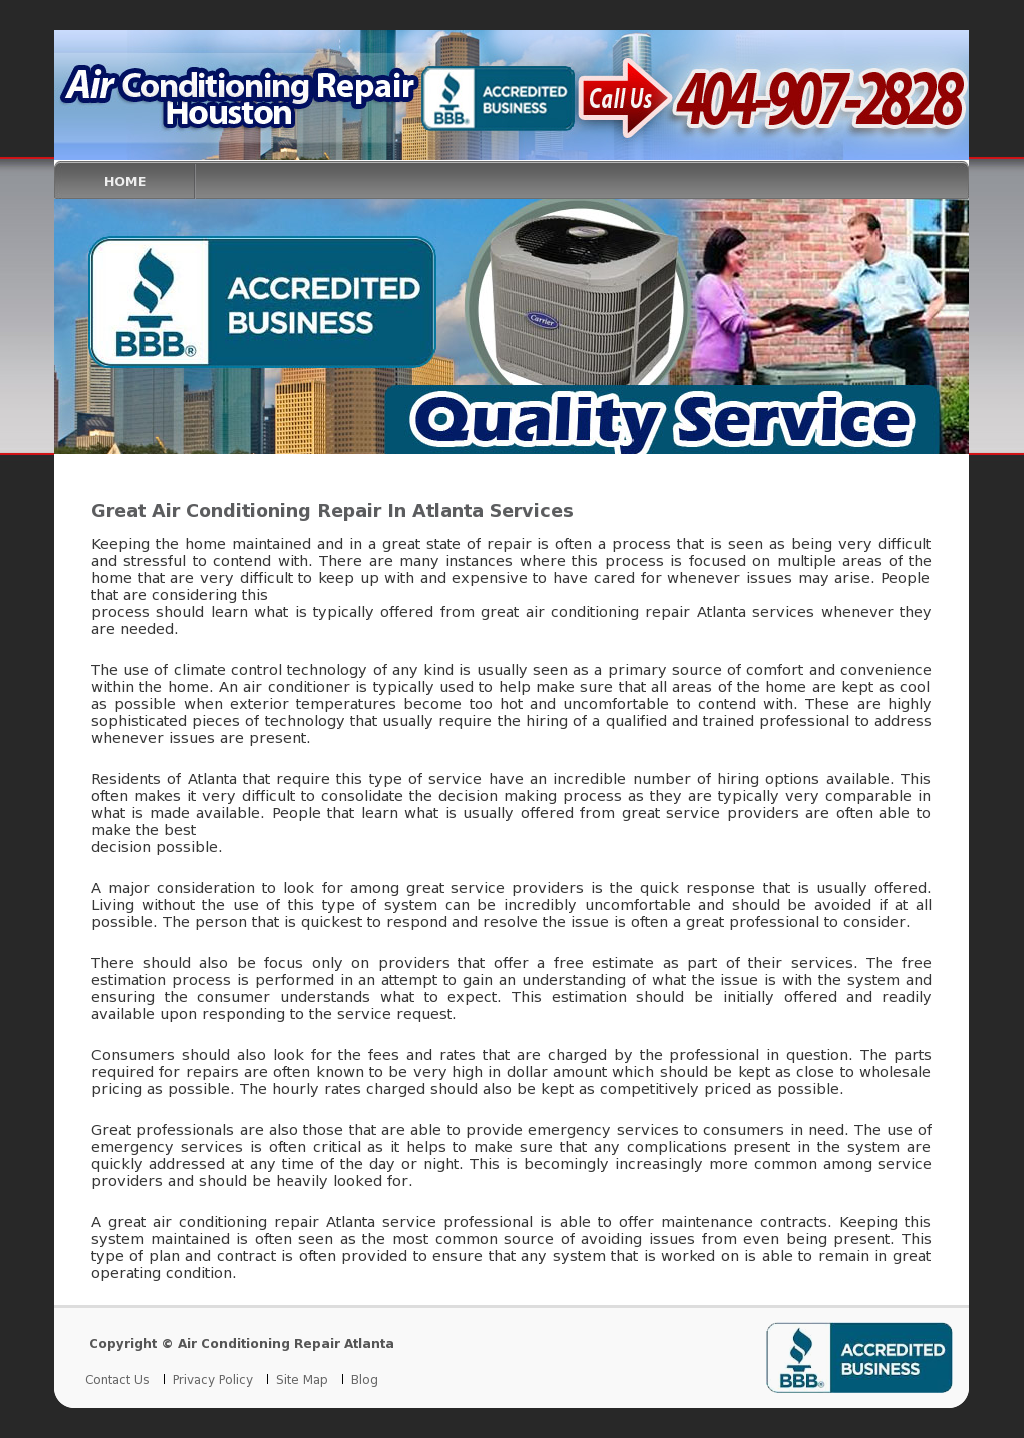 Proud to service the Atlanta area air conditioning needs